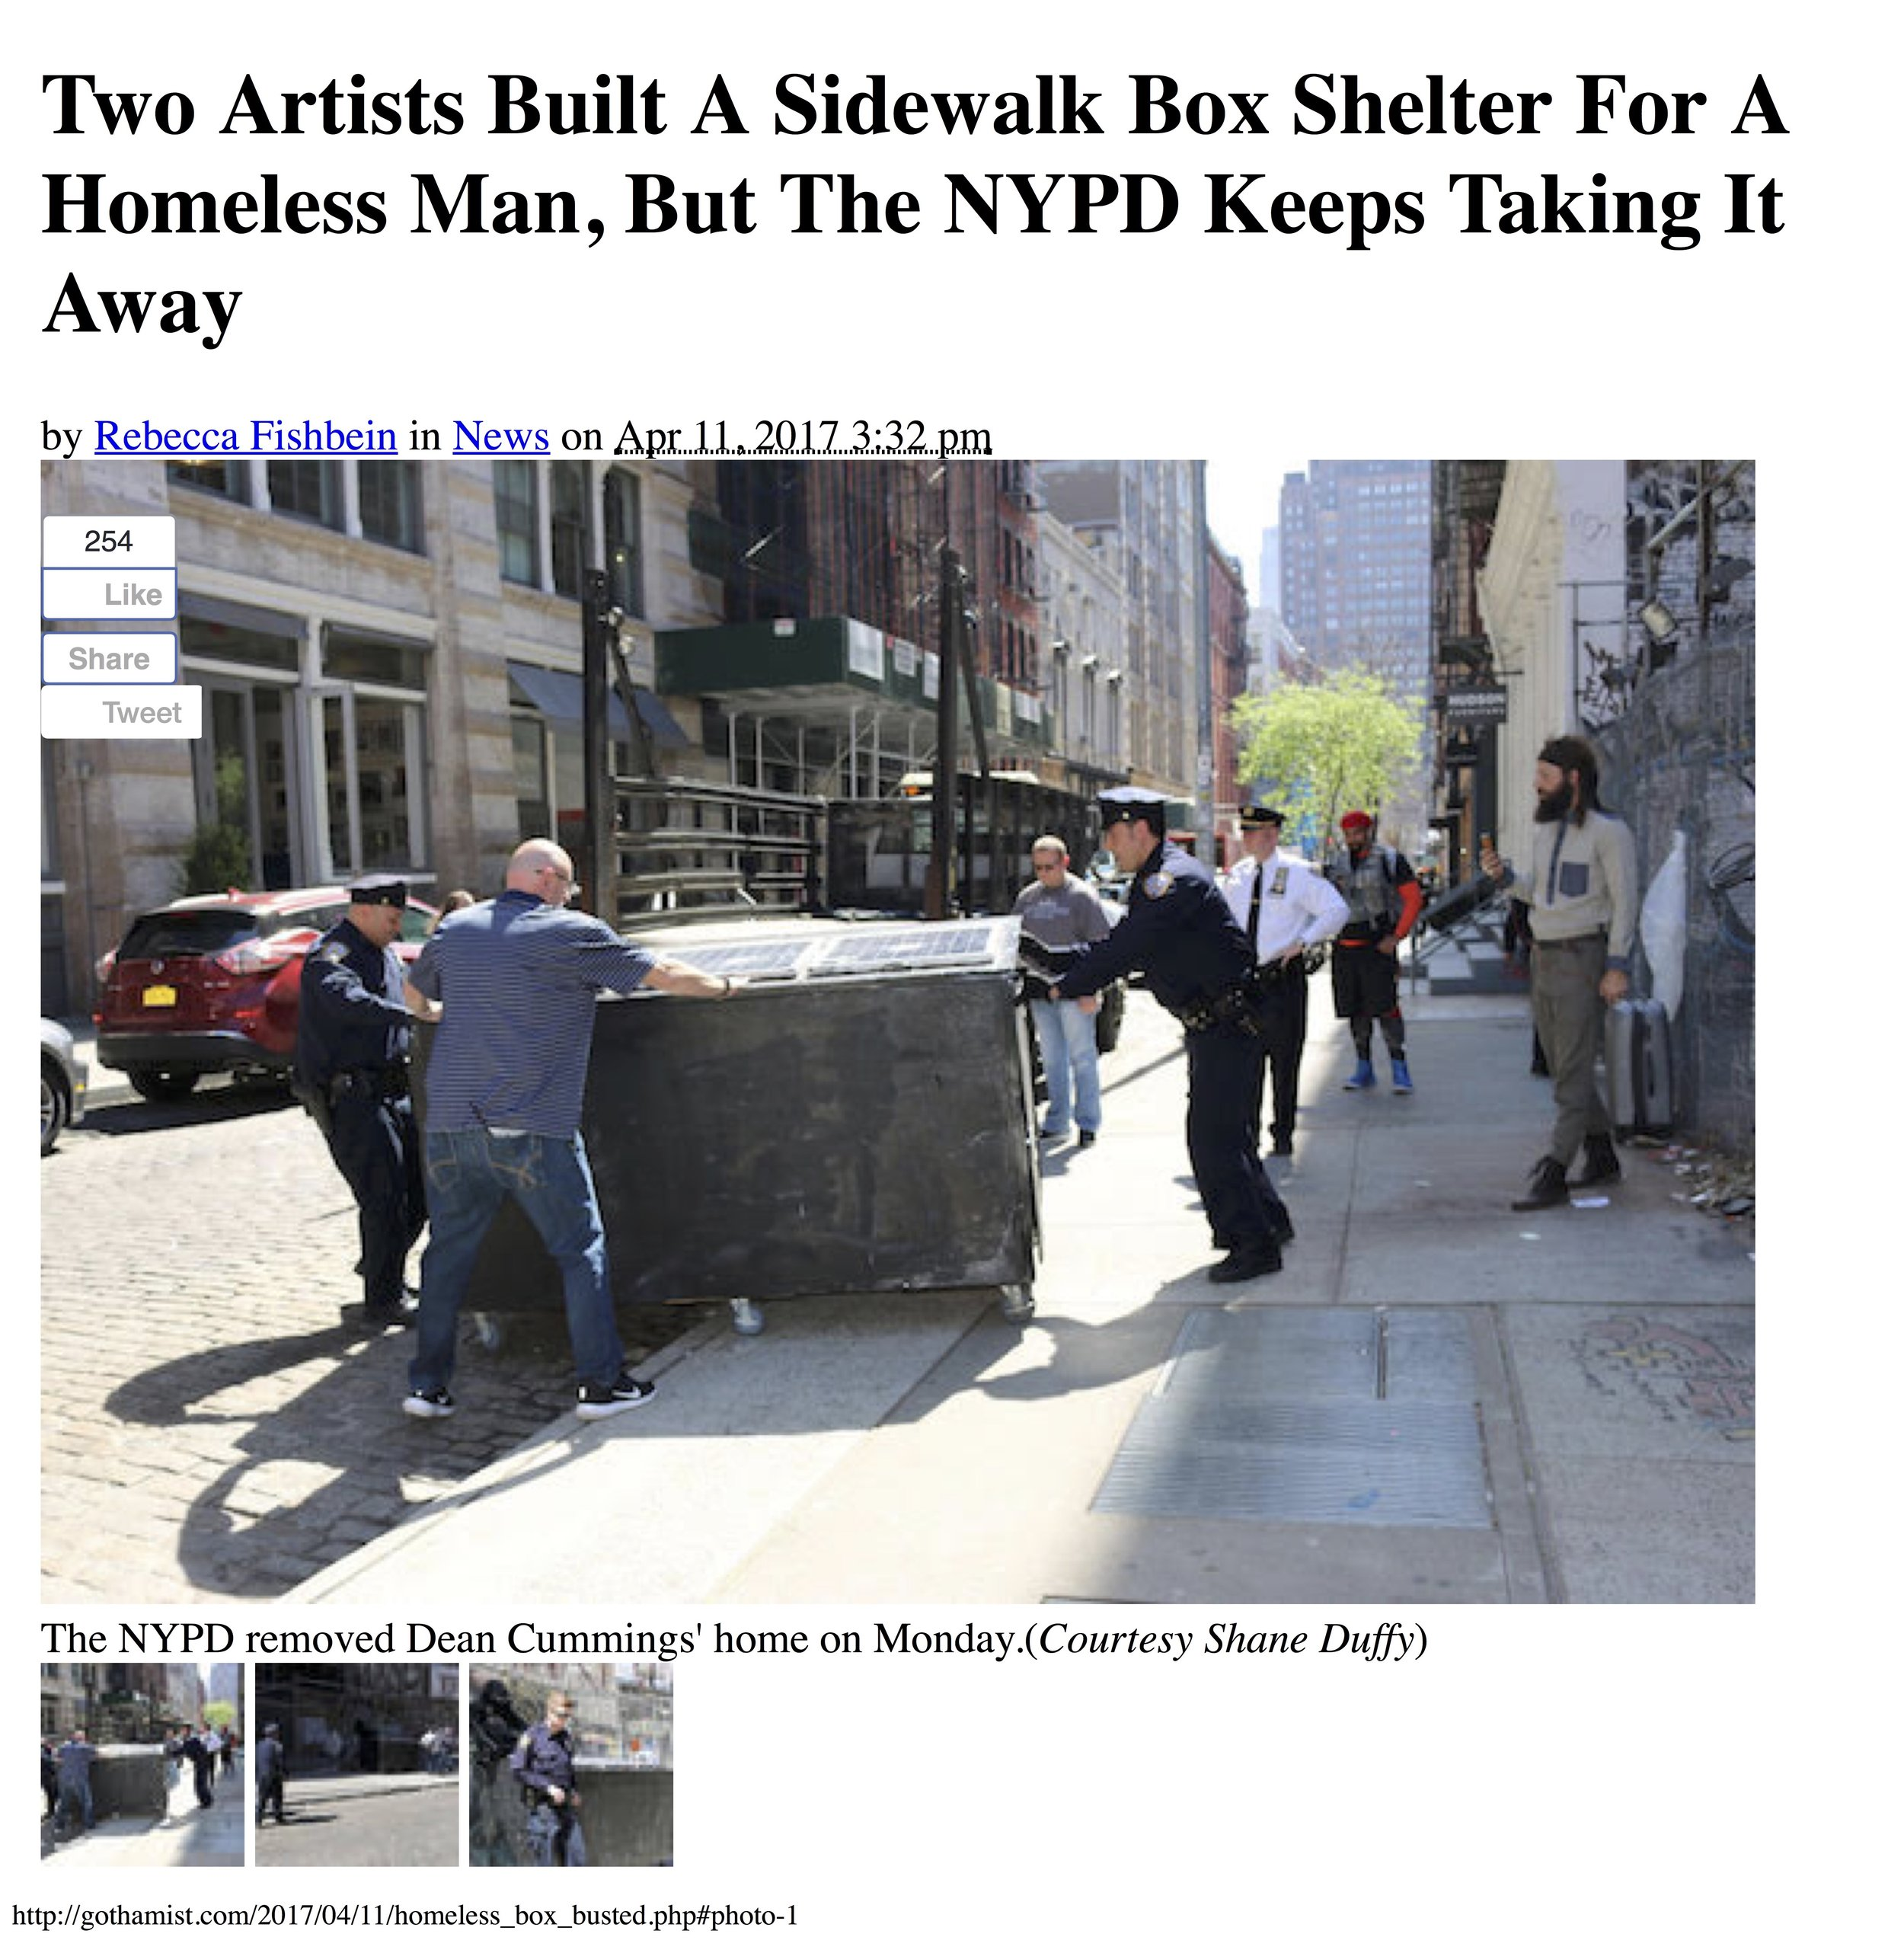 Two Artists Built A Sidewalk Box Shelte...e NYPD Keeps Taking It Away- Gothamist copy.jpg